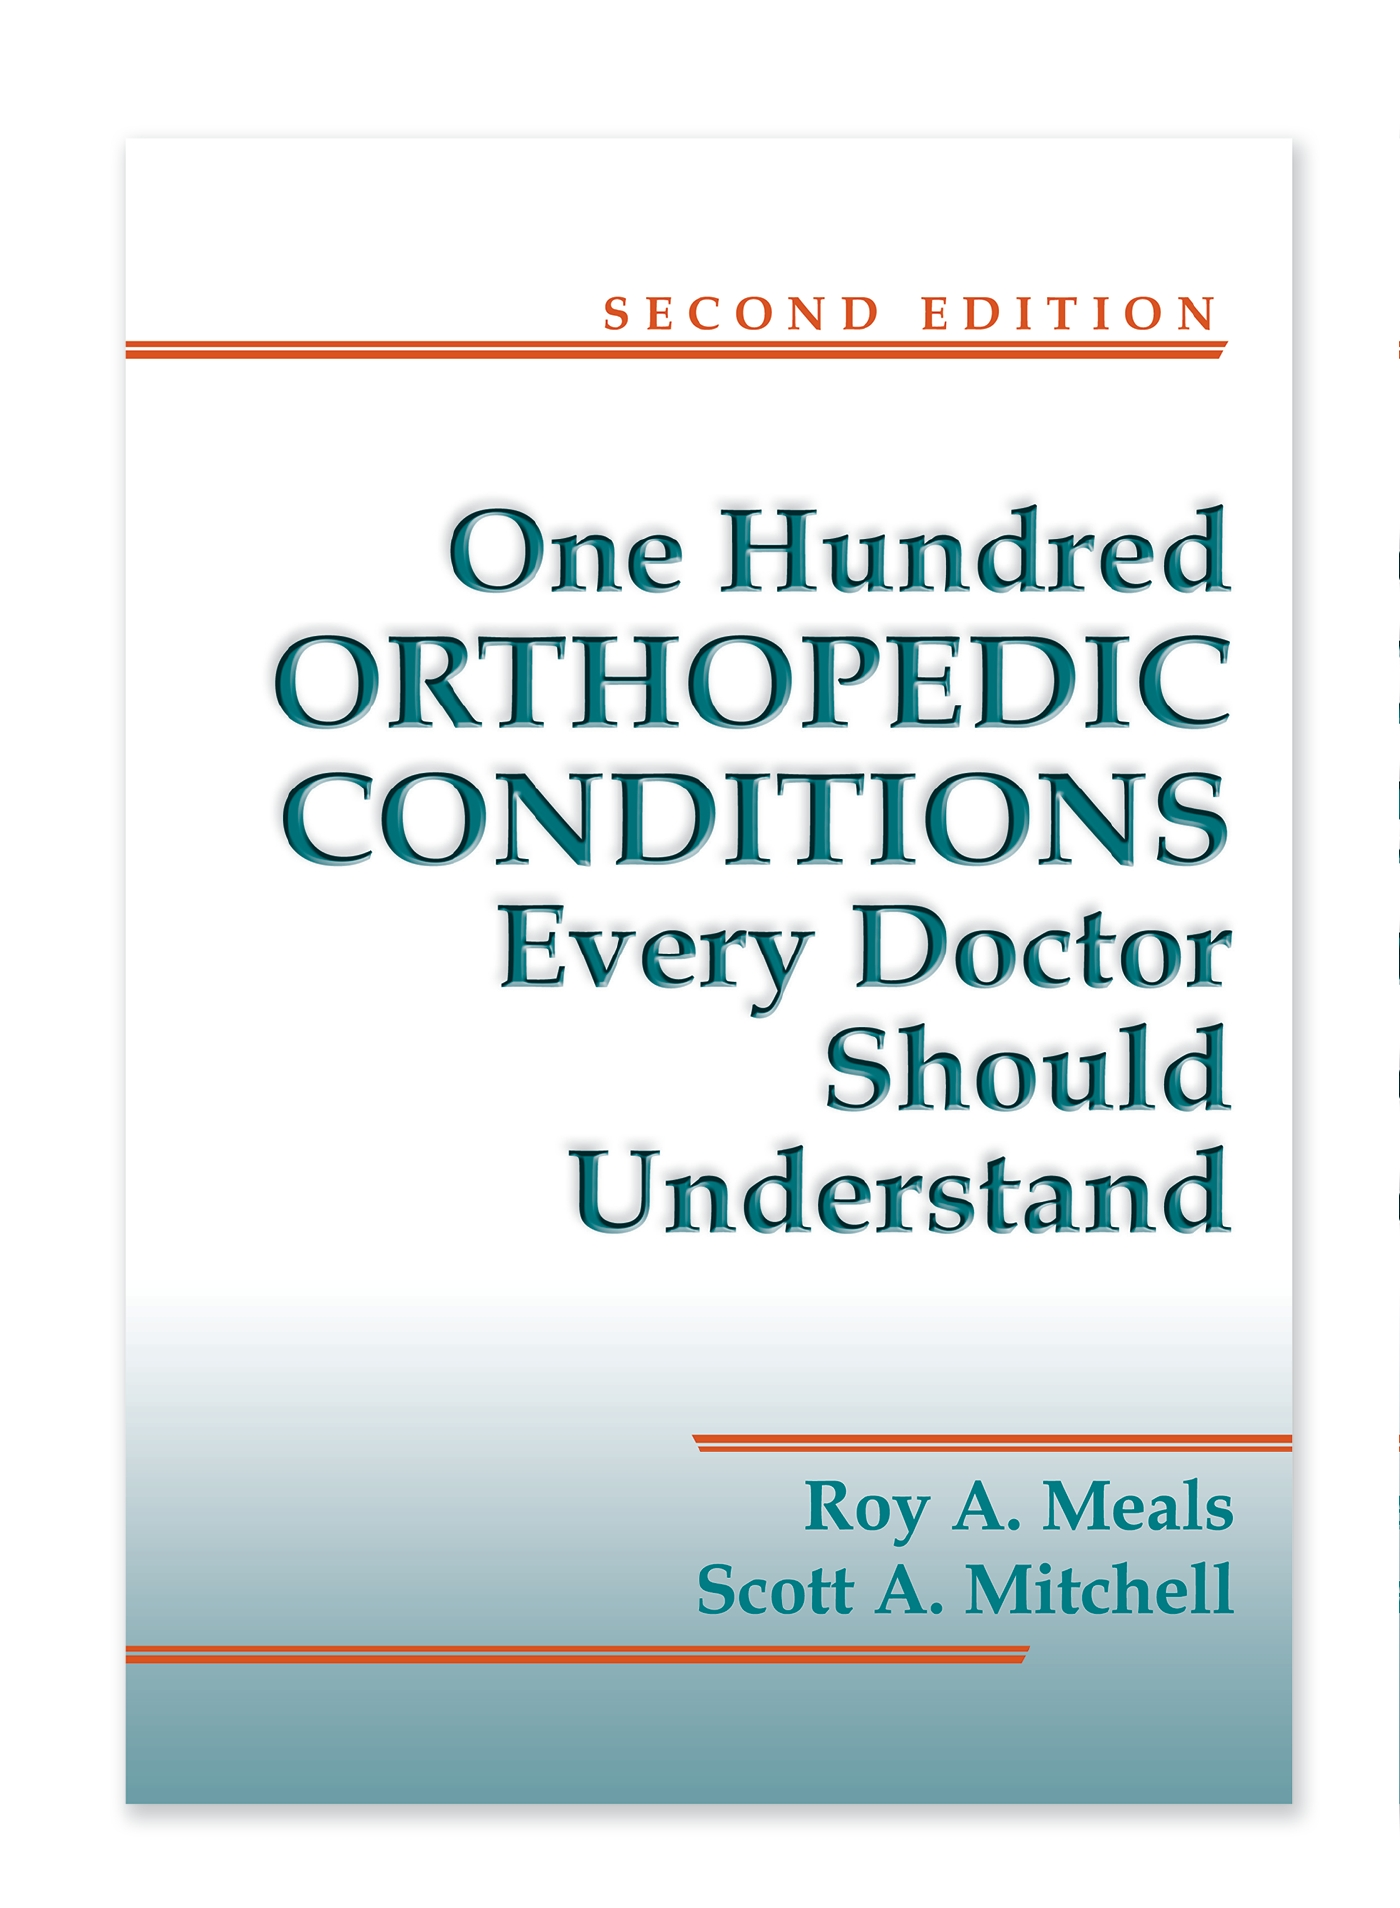 100 Orthopedic Conditions Every Doctor Should Understand